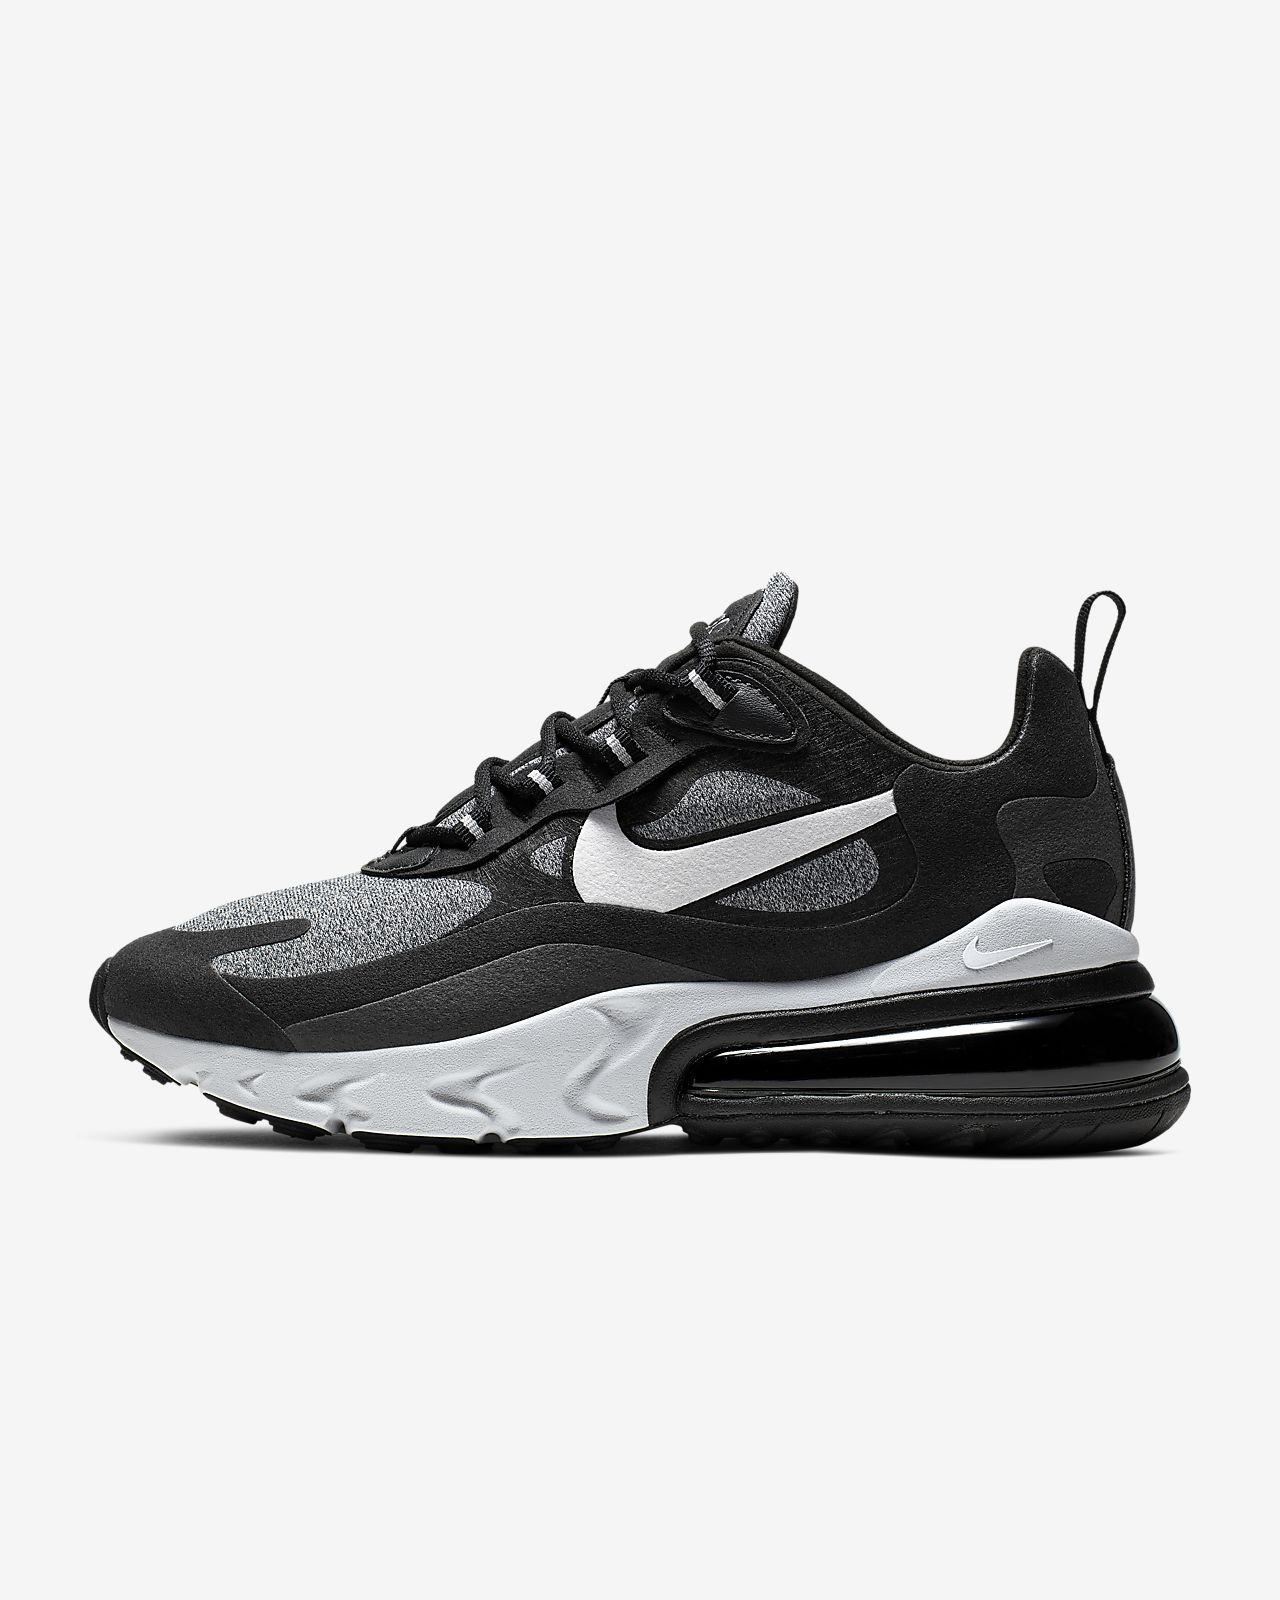 Air Max Nike Chaussures Femme Flyknit 270 Clear